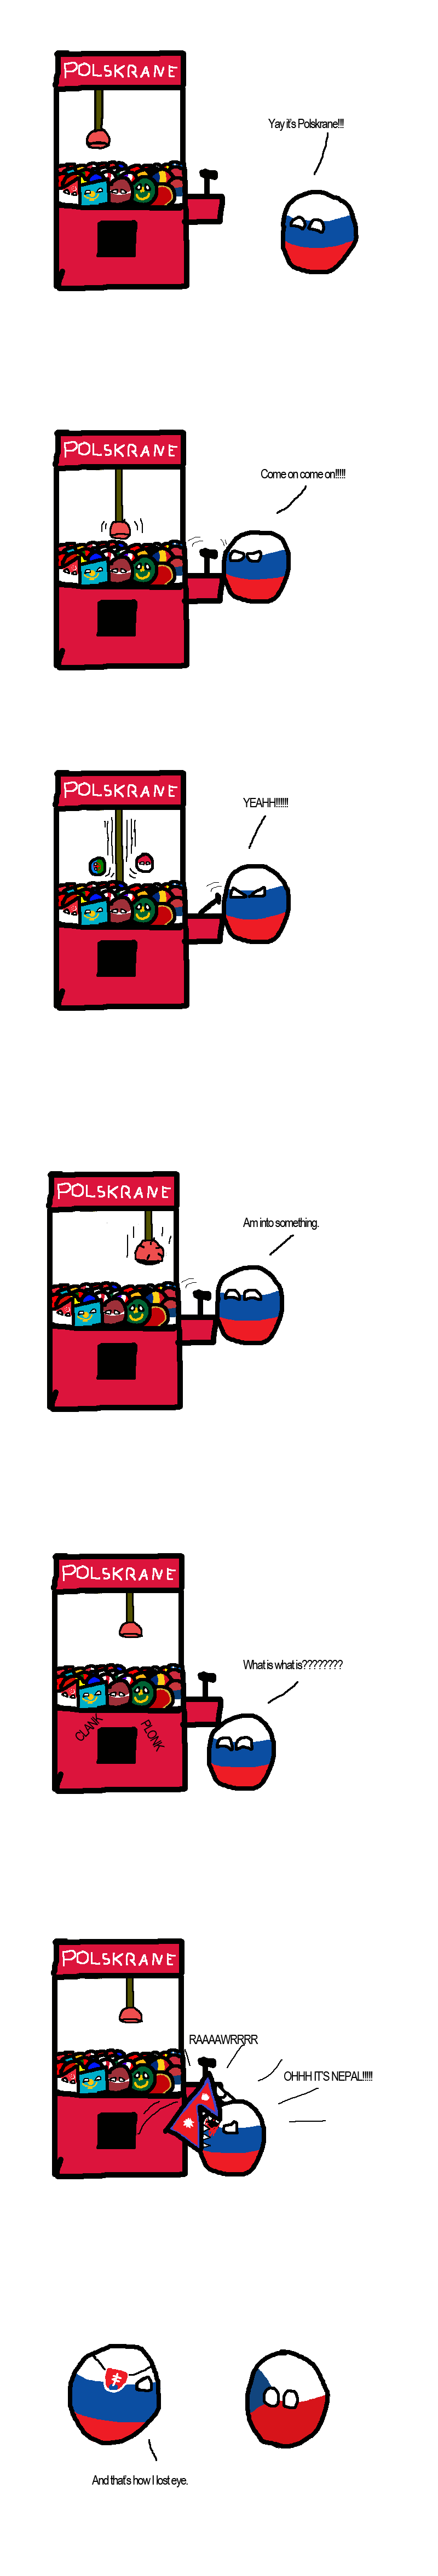 It's Polskrane time!